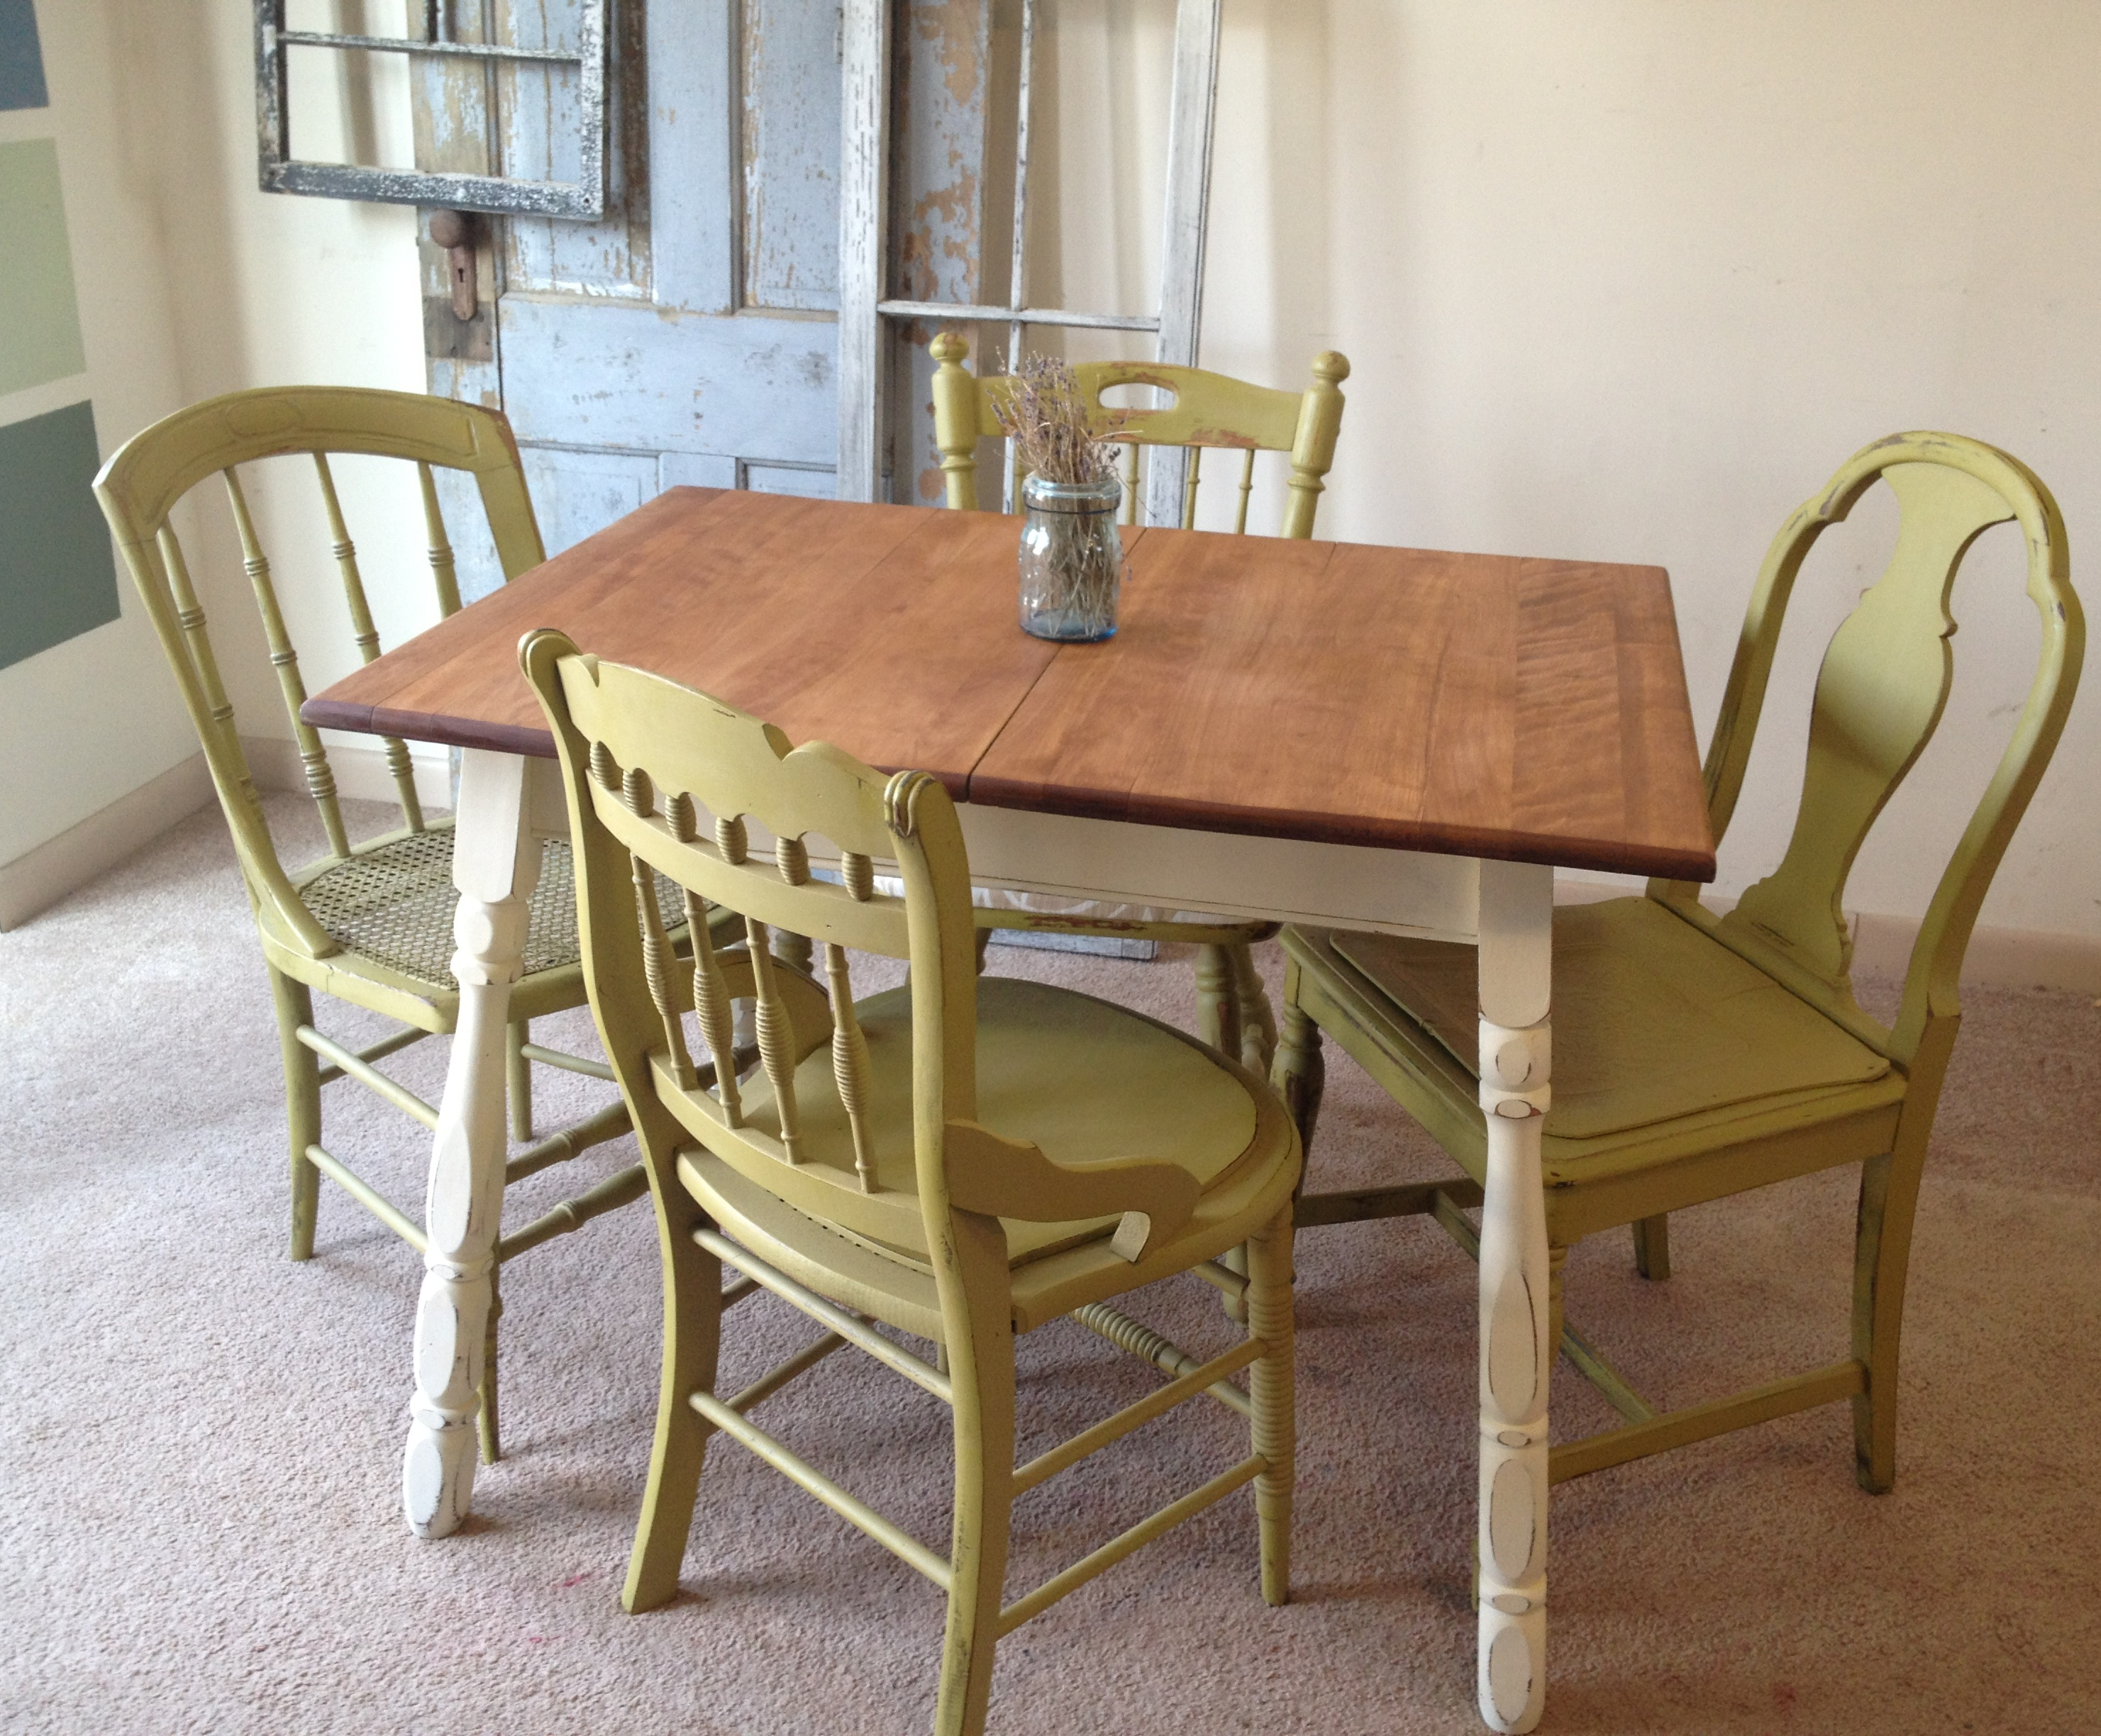 Kitchen table for small spaces photo - 1